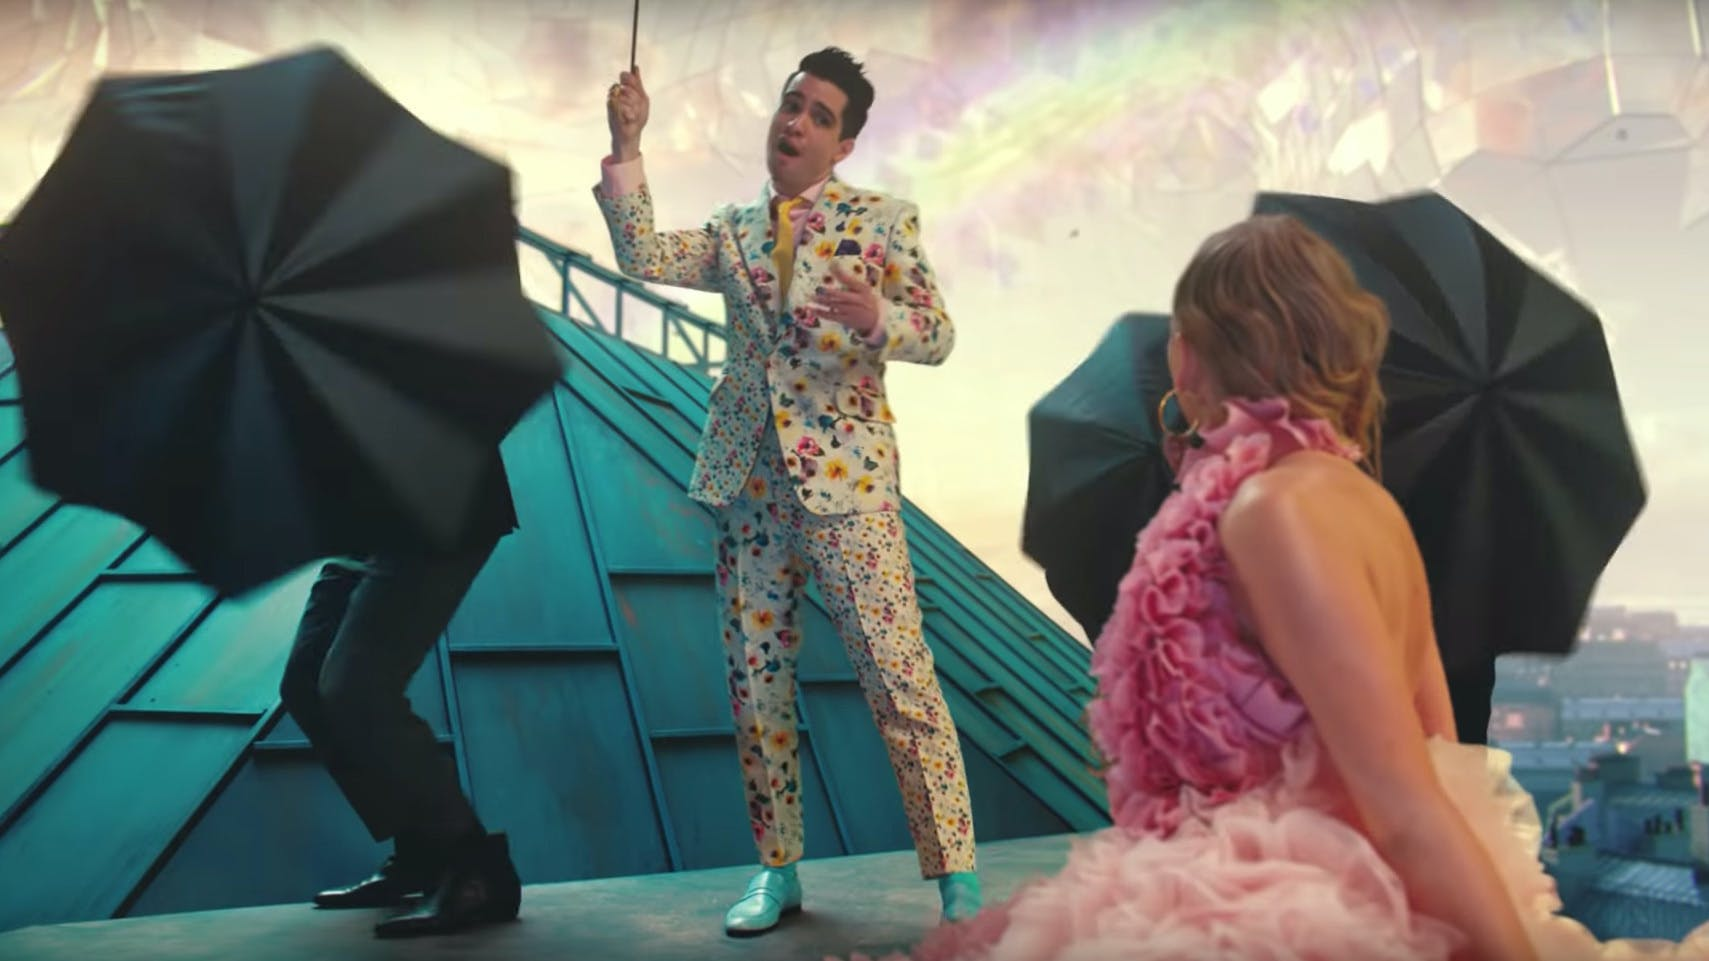 Brendon Urie Releases New Song With Taylor Swift